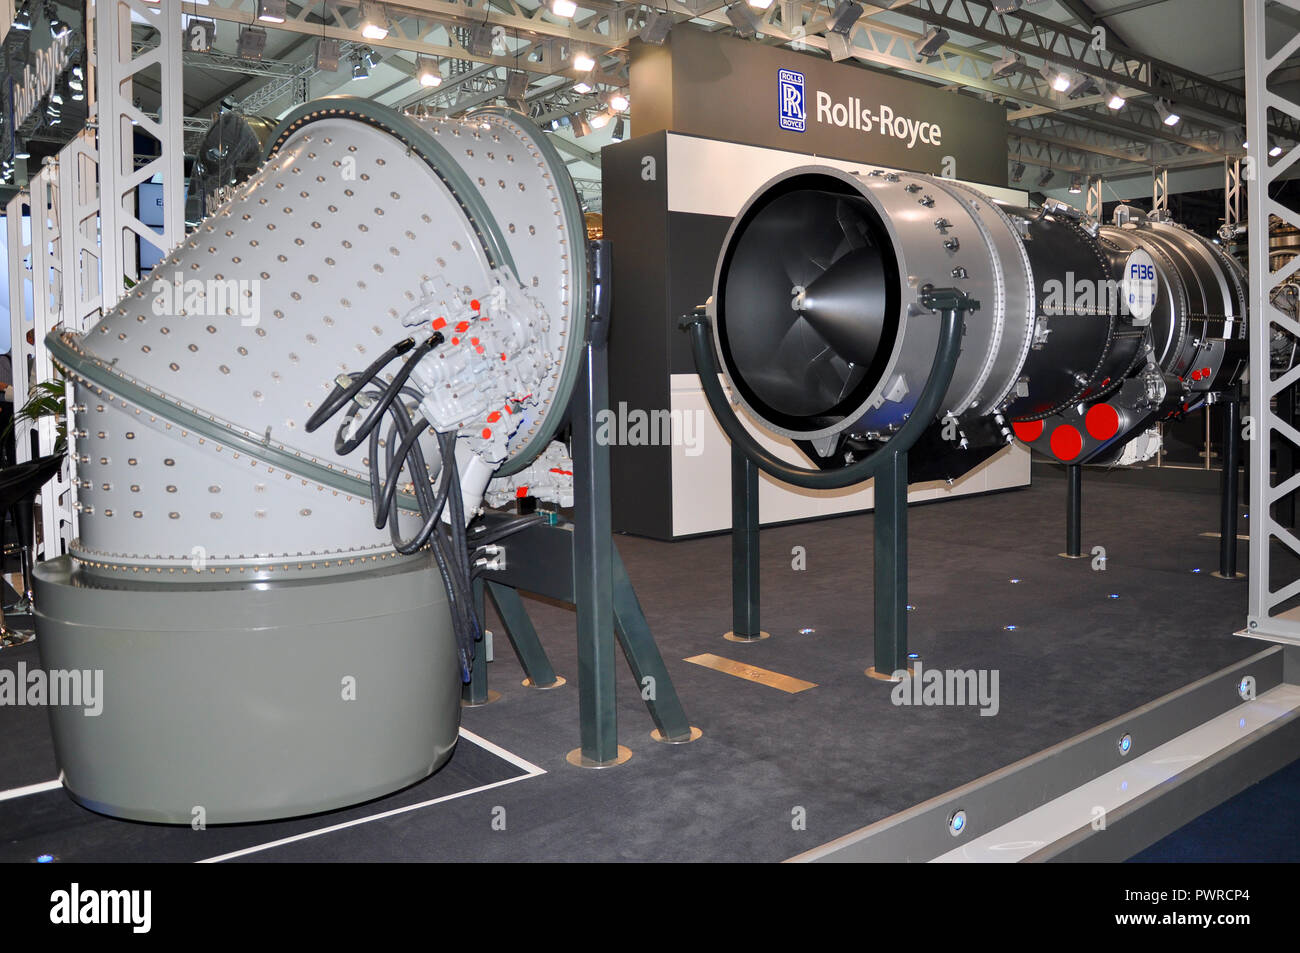 General Electric Rolls-Royce F136 advanced turbofan engine being developed by General Electric and Rolls-Royce plc for the Lockheed Martin F-35 - Stock Image